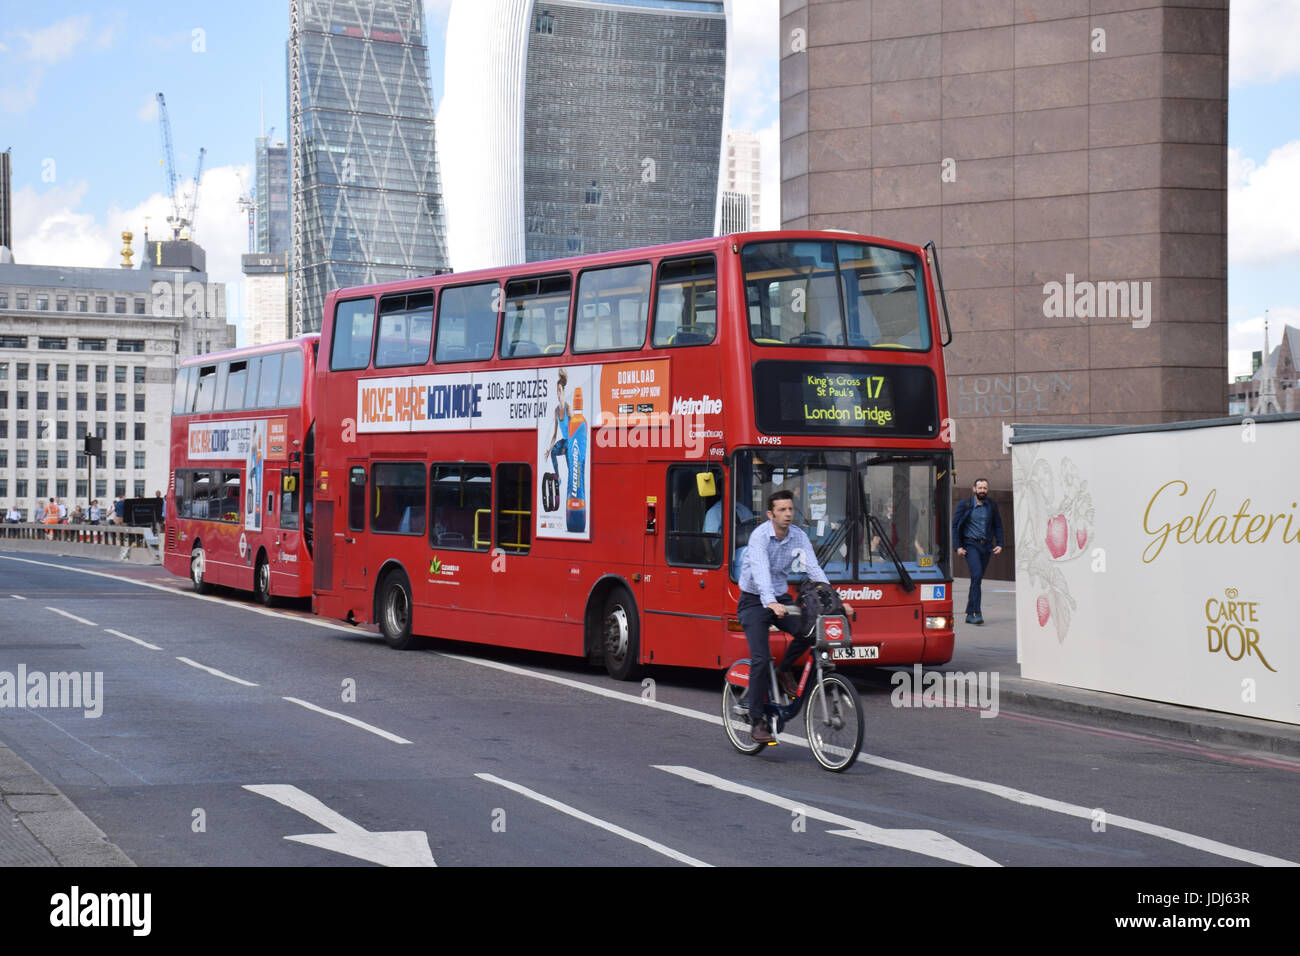 Traffic on London Bridge.  In the background: City of London - 20 Fenchurch Street (Walkie Talkie building) and Stock Photo